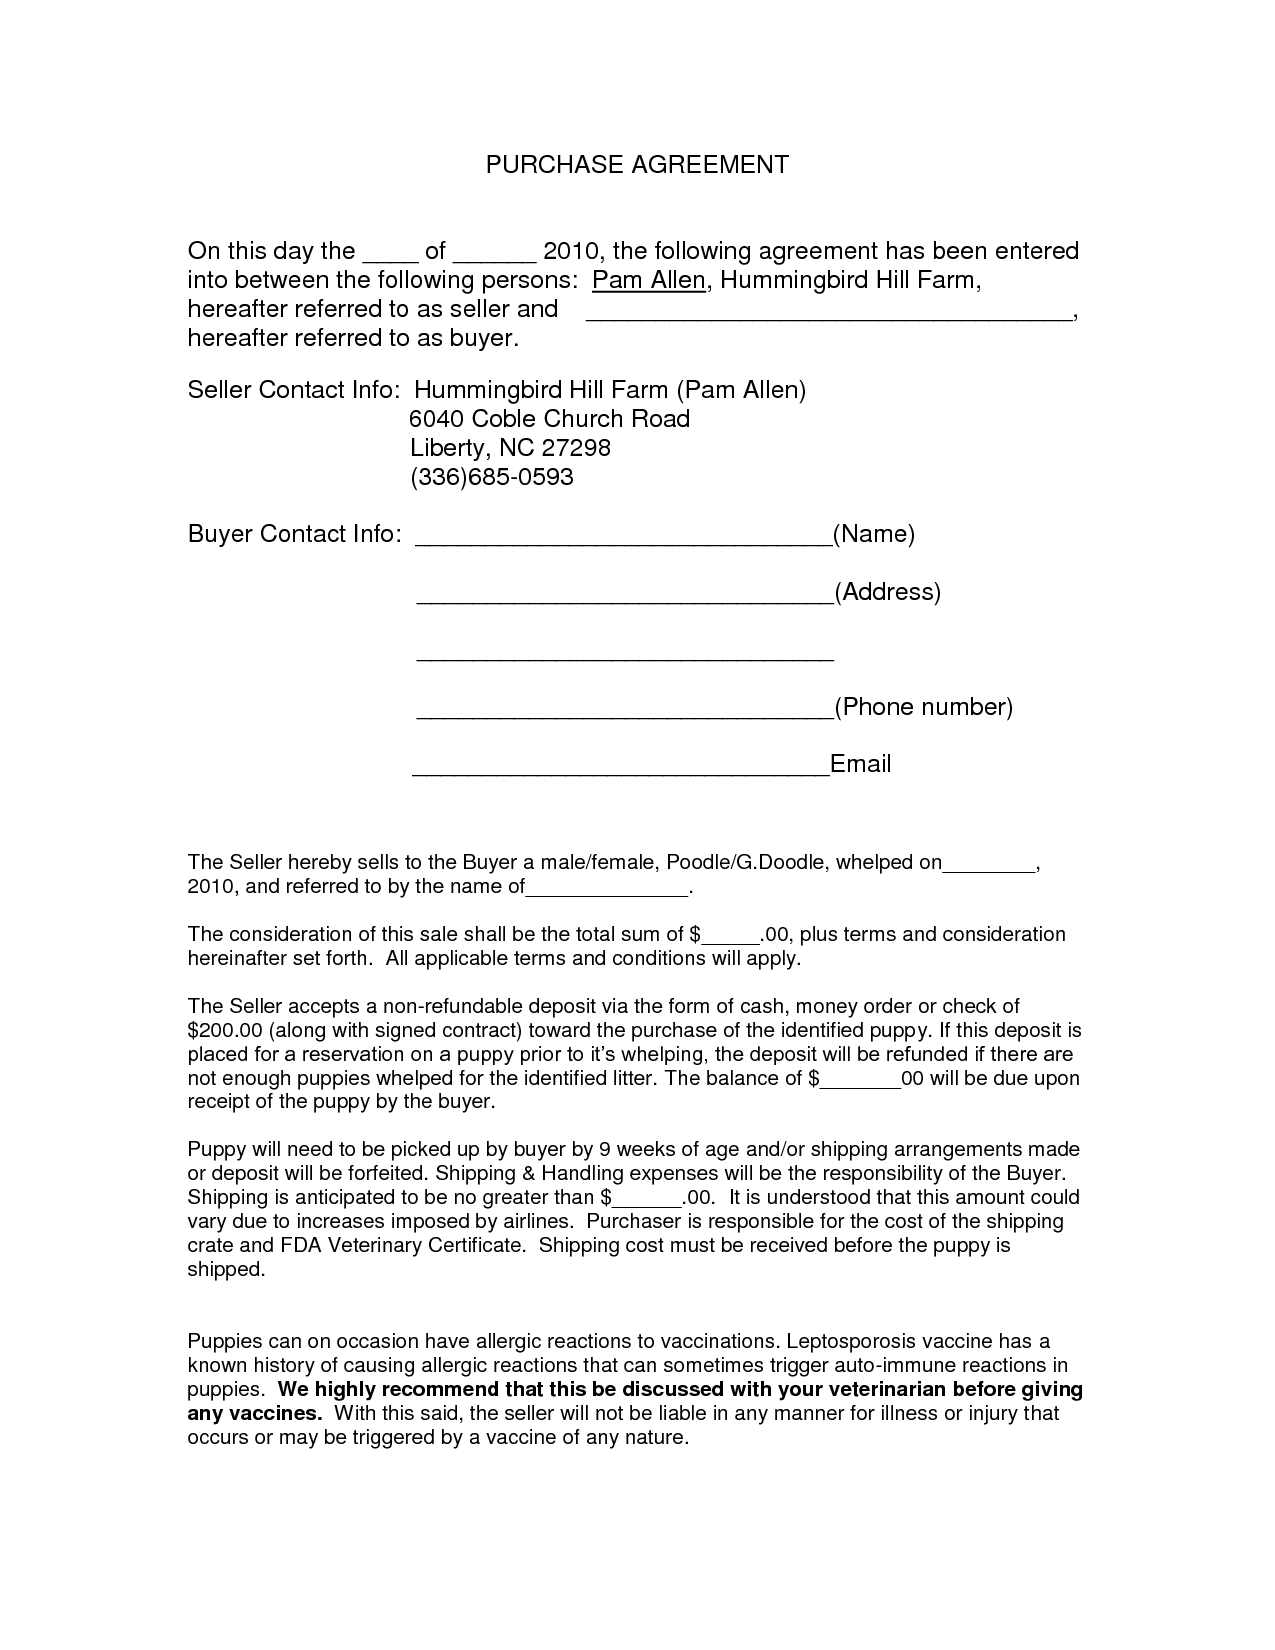 Auto Purchase Agreement Form - Docnyy13910 - Purchase Contract - Free Printable Purchase Agreement Forms